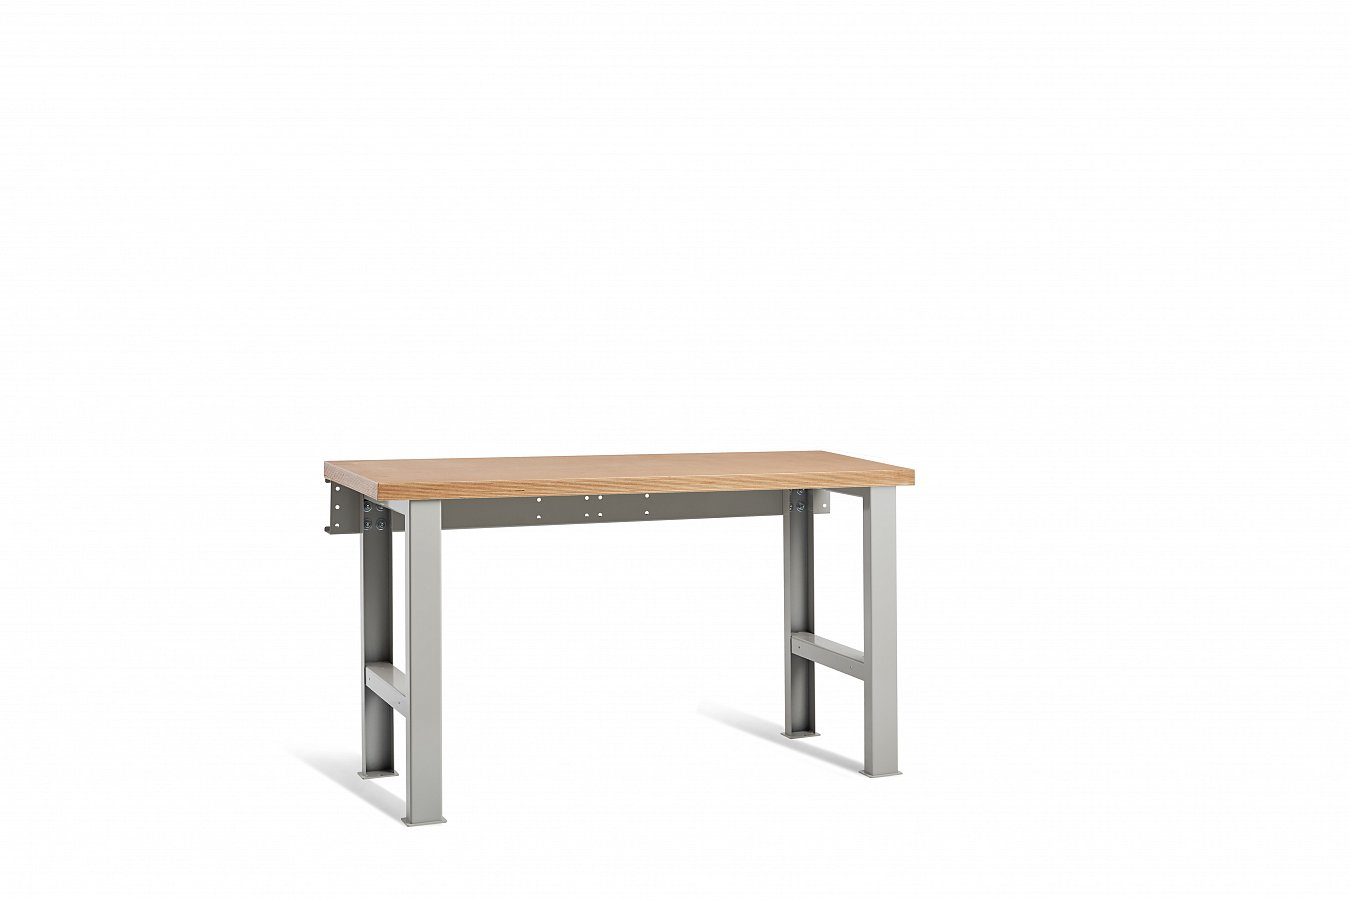 DiKom Workbench VS-150-01 (5)